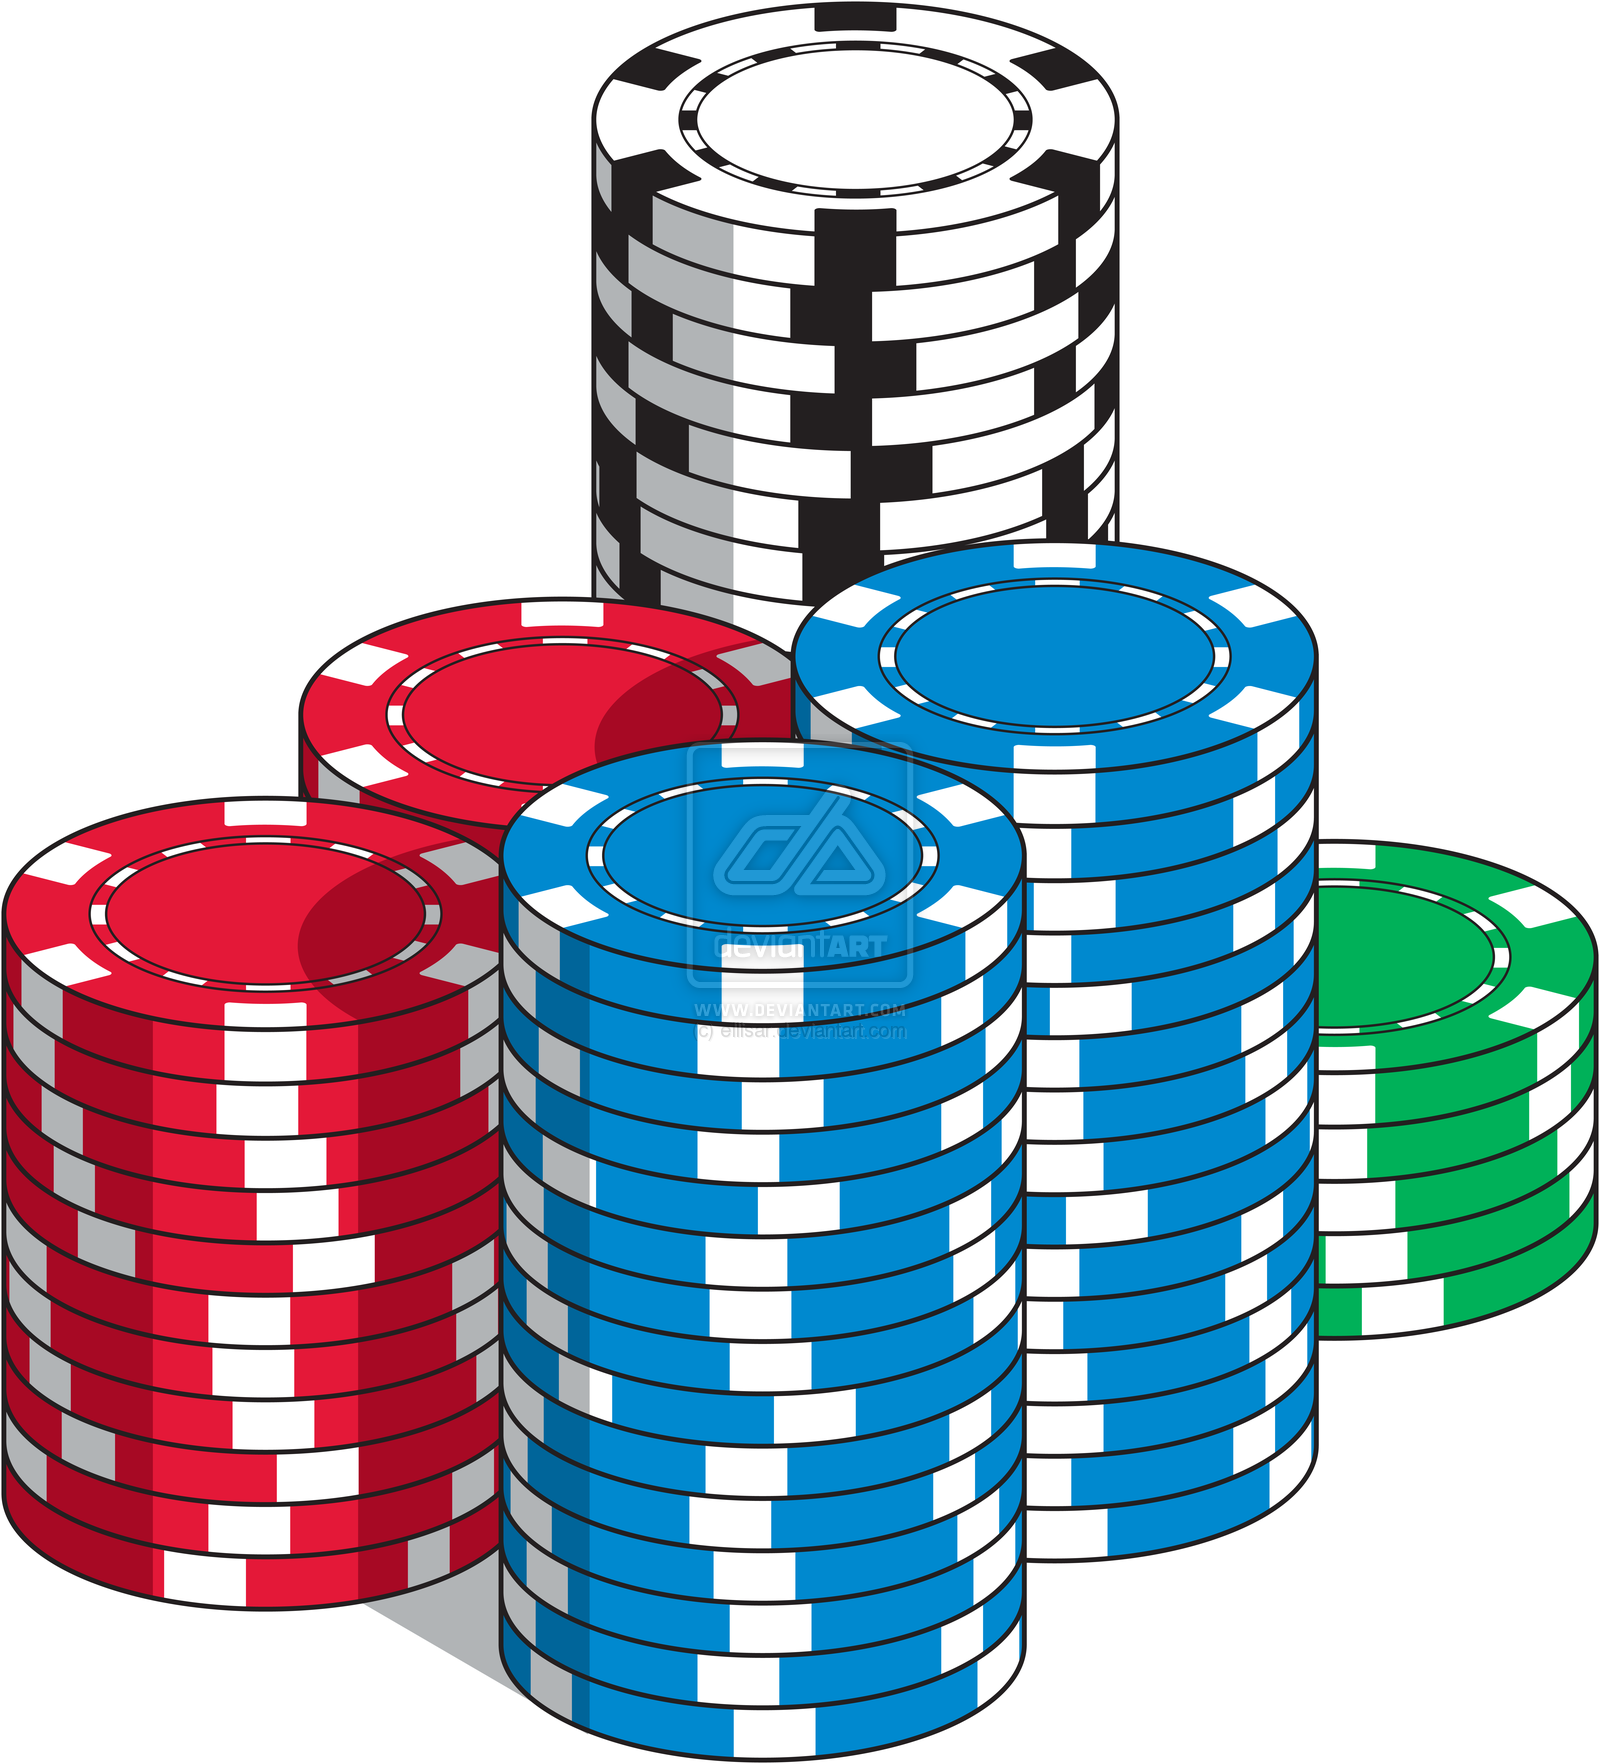 image transparent Casino free download best. Las vegas clipart poker chip